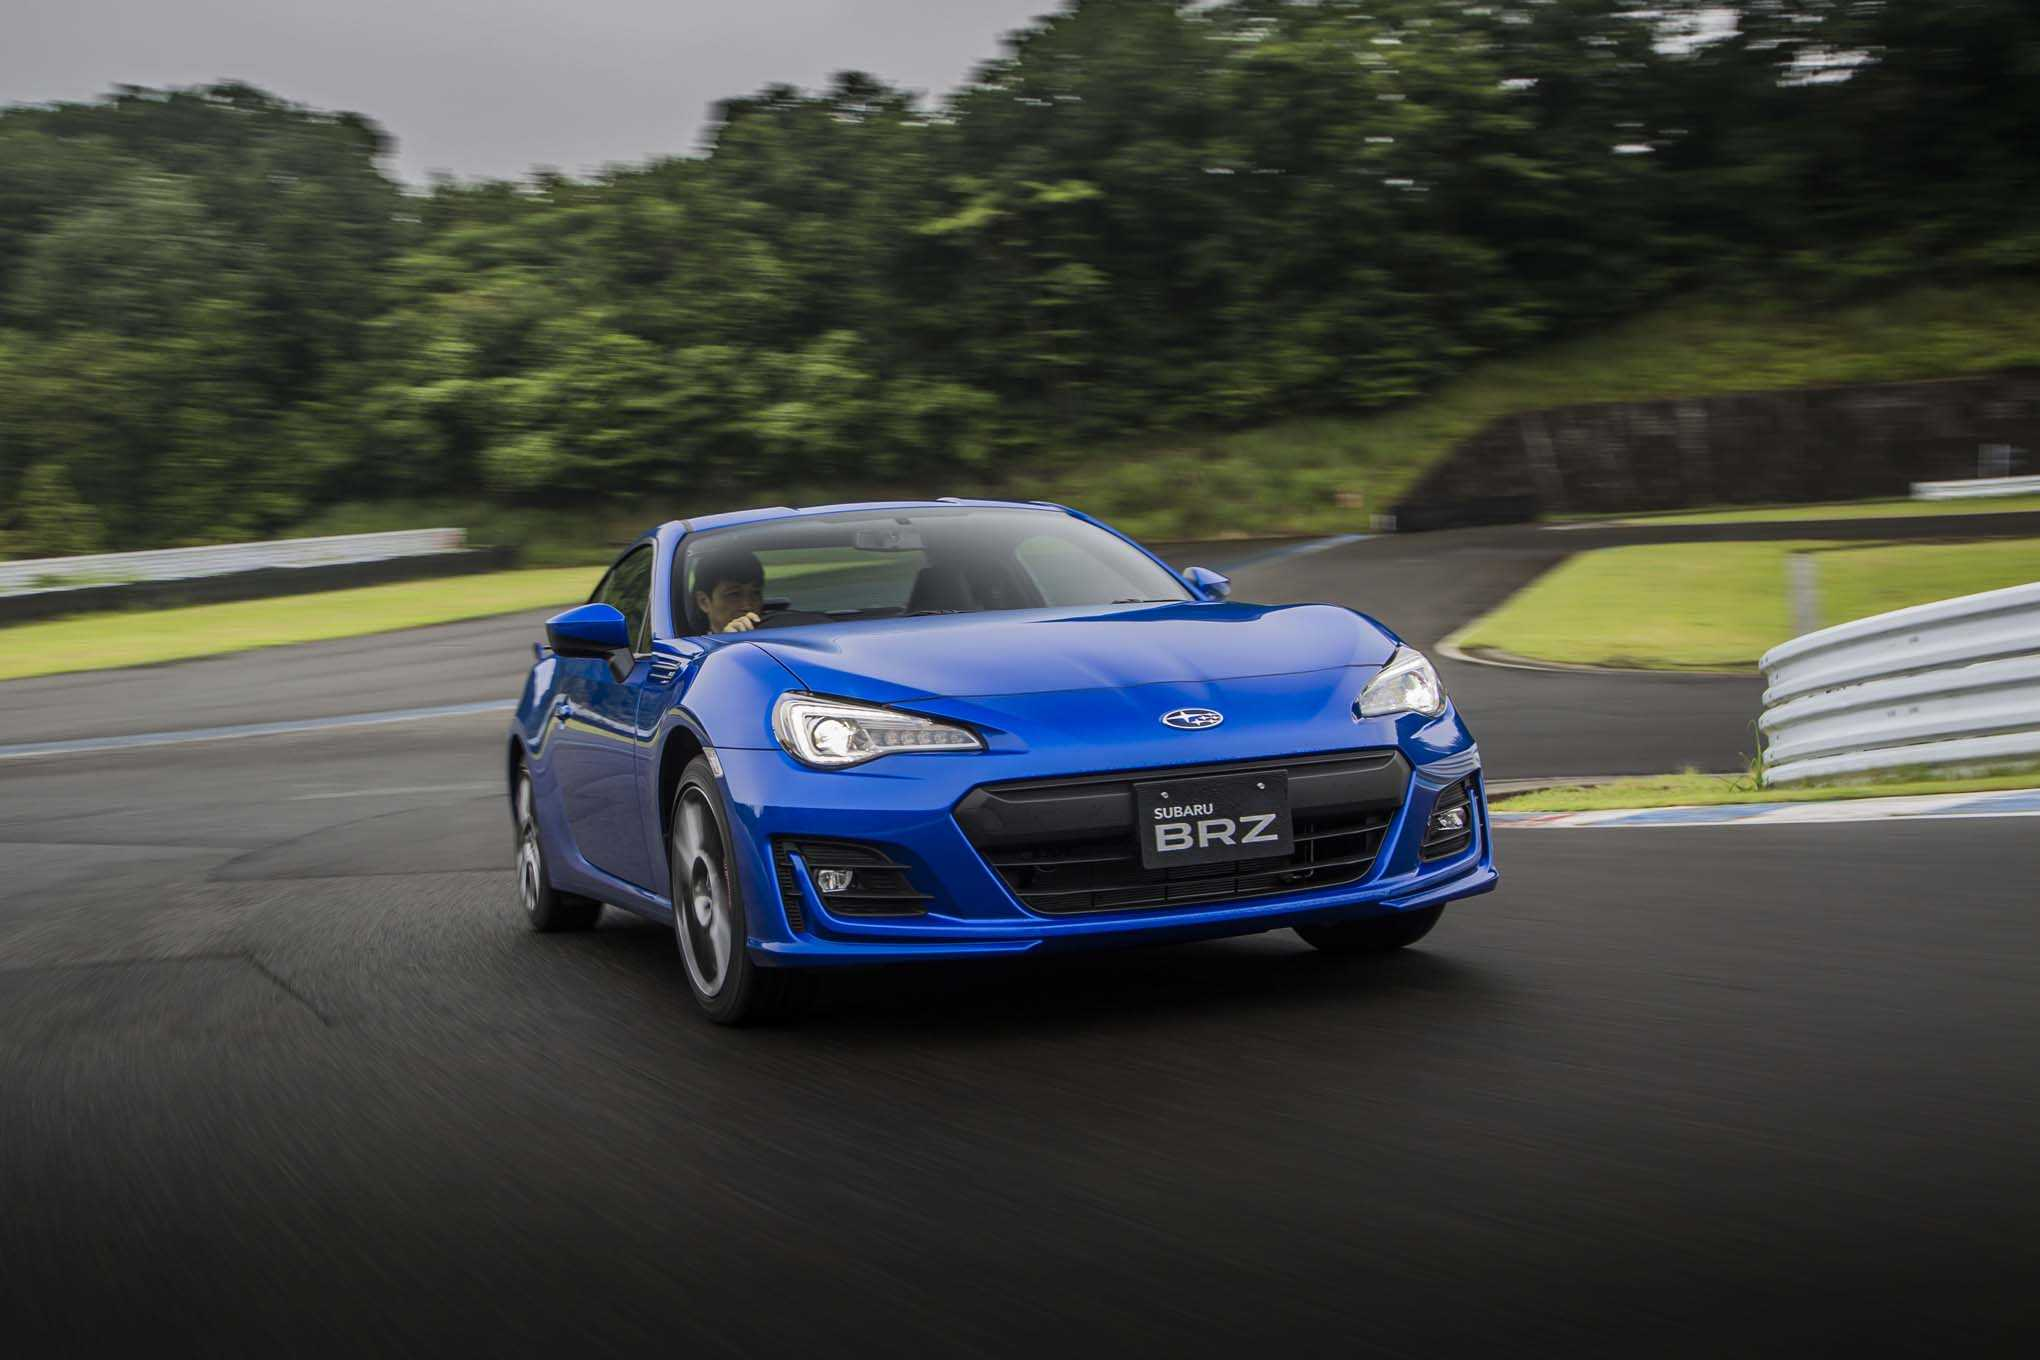 2017 Subaru BRZ Trimline Variants and Pricing Announced, Starts At $26,315